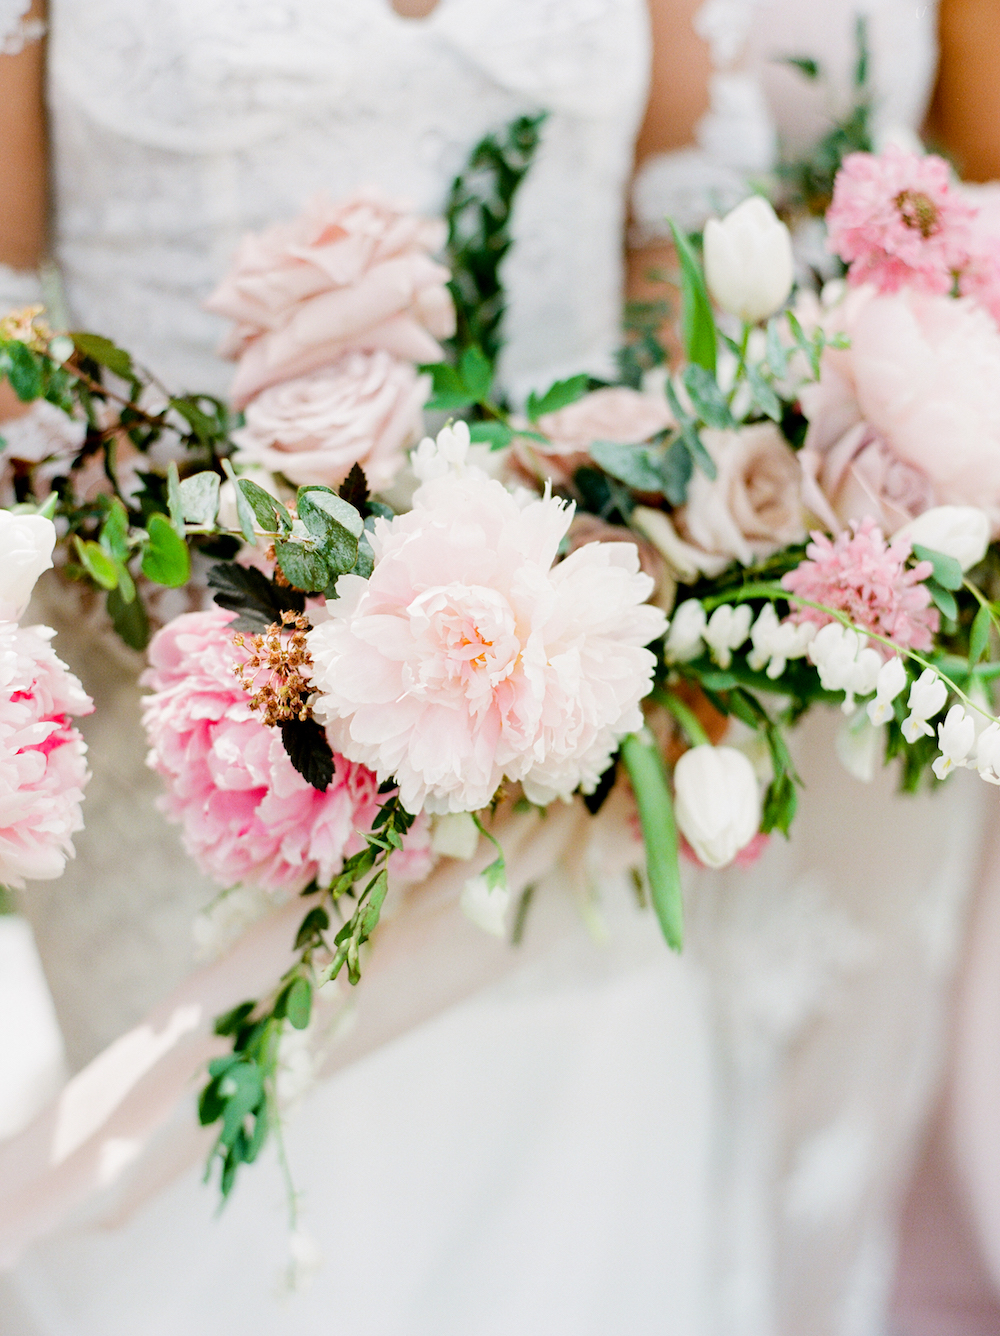 Blush Wedding Bouquet - Stone House Creative